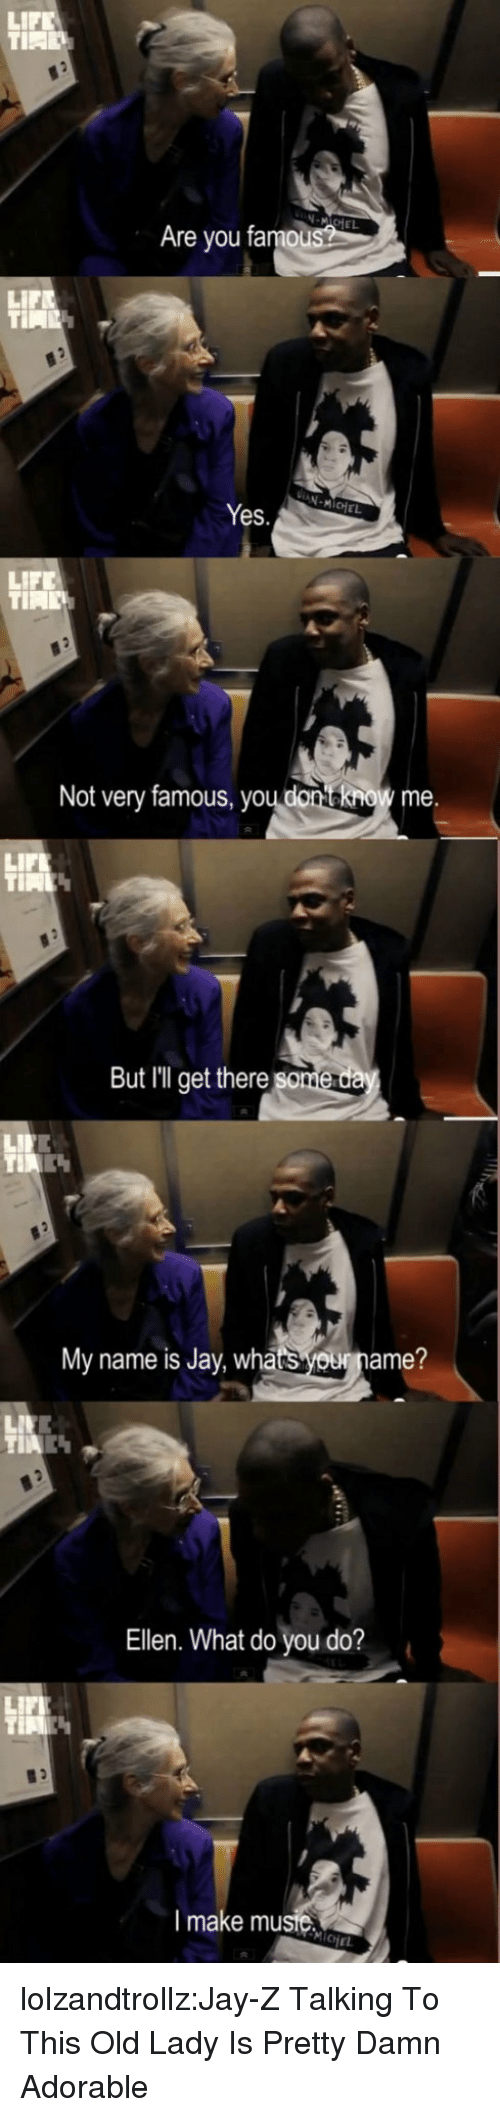 Jay, Jay Z, and Life: LIF  N-MIoE  Are you famou  LIFE  Yes.  LIFE  Not very famous, youdonno me  LIFL  But Illget there  My name is Jay  whatsouname?  Ellen. What do you do?  LIFL  I make musie  CHEL lolzandtrollz:Jay-Z Talking To This Old Lady Is Pretty Damn Adorable